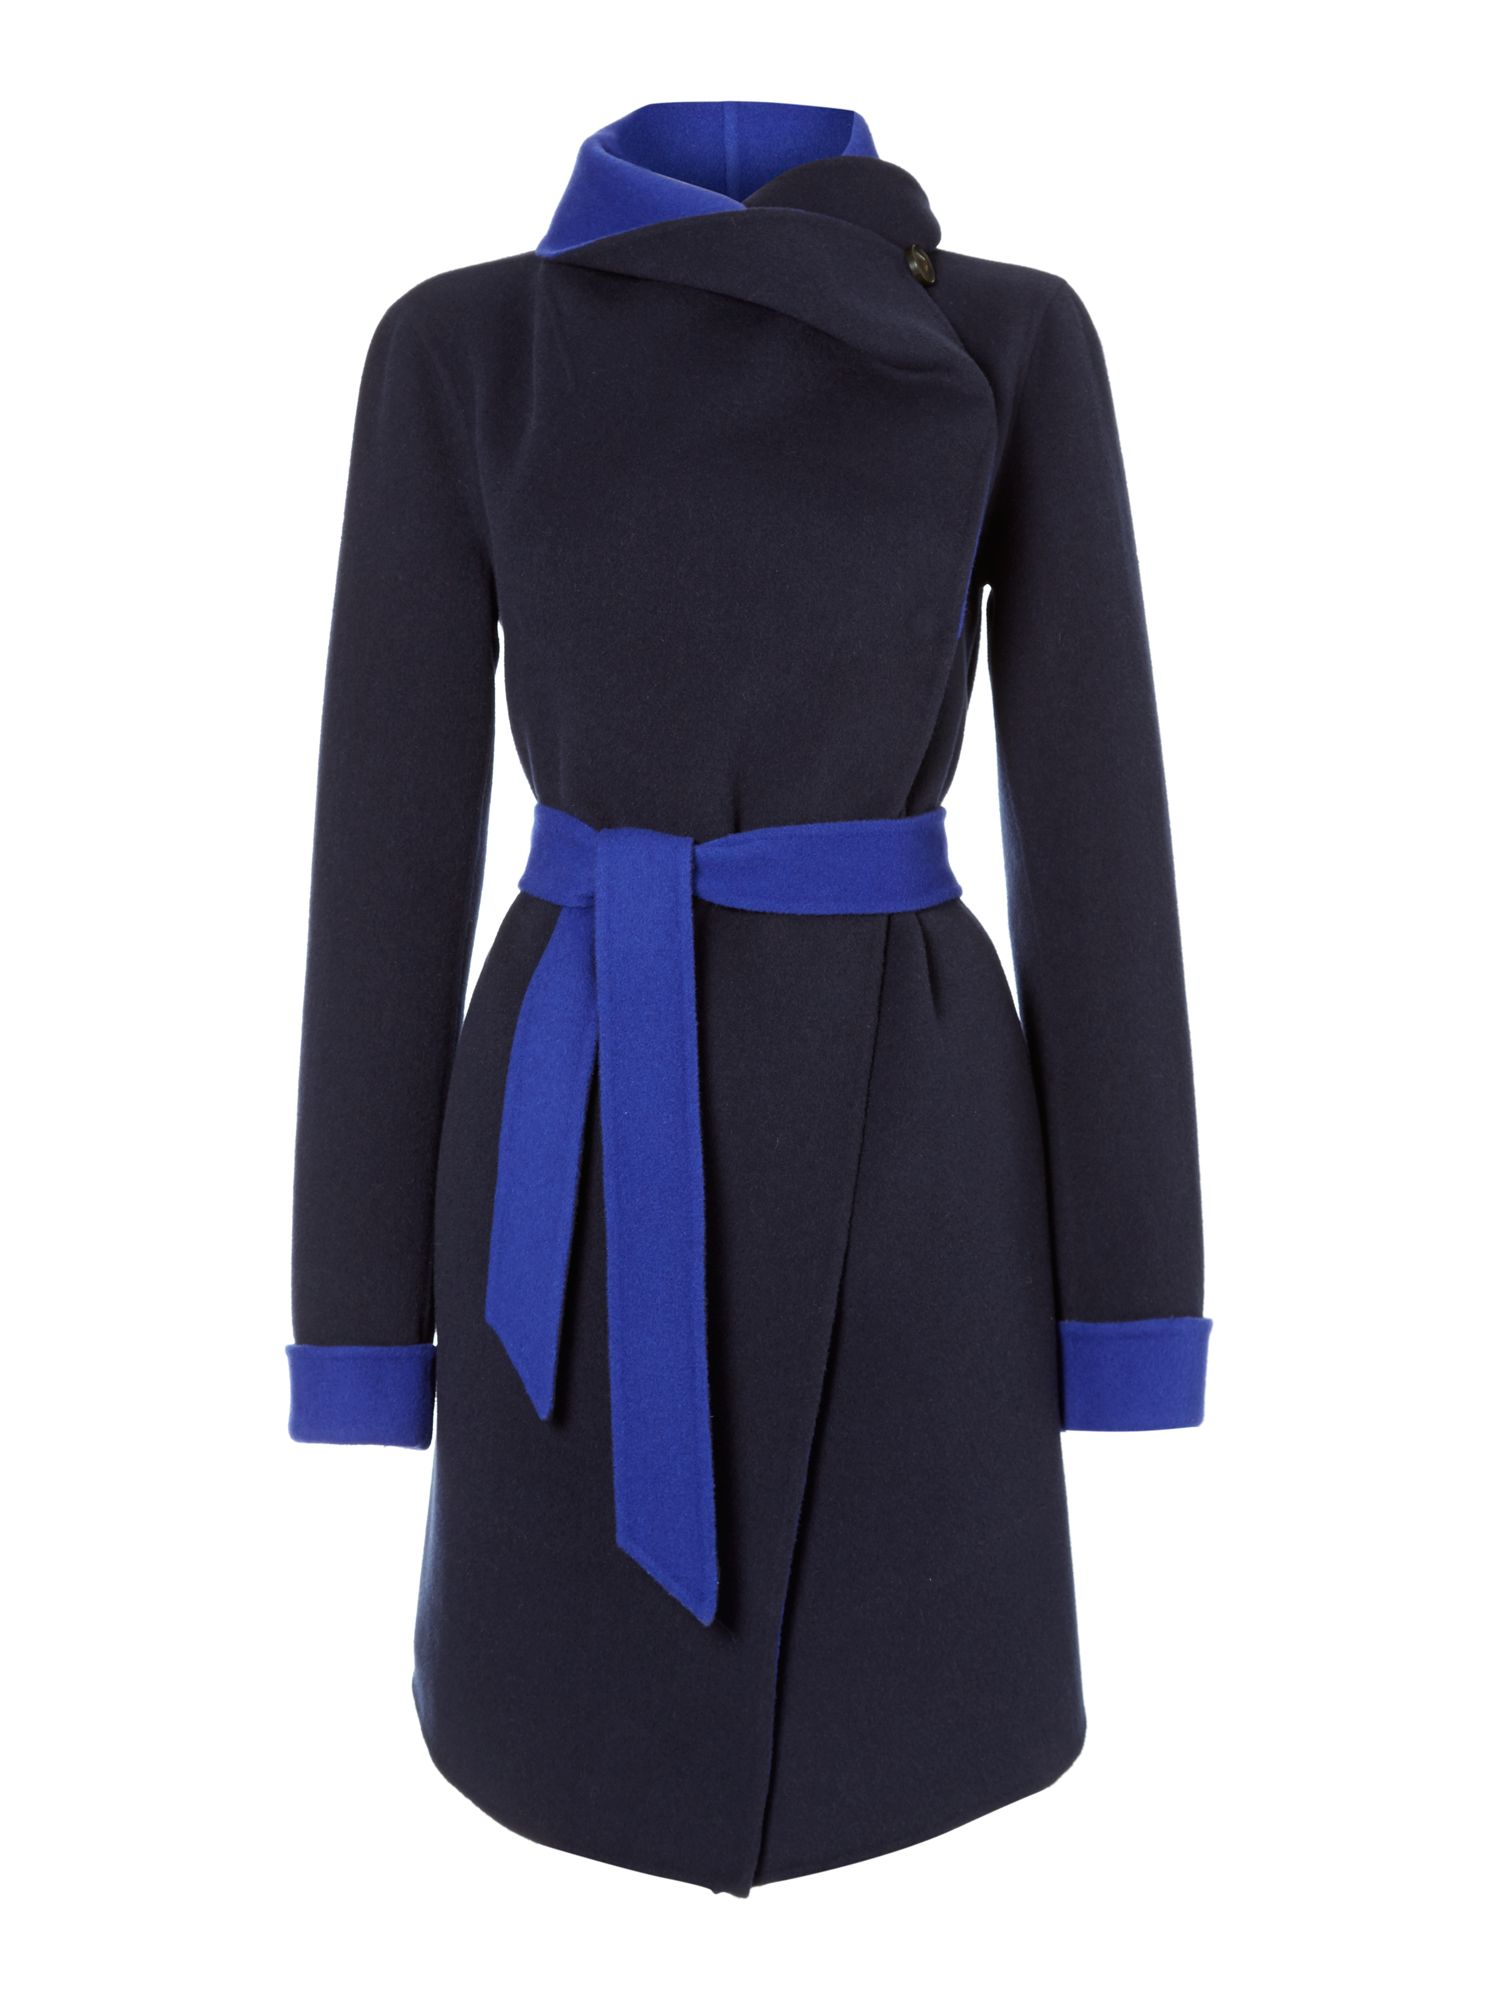 Long sleeve contrast coat with belt